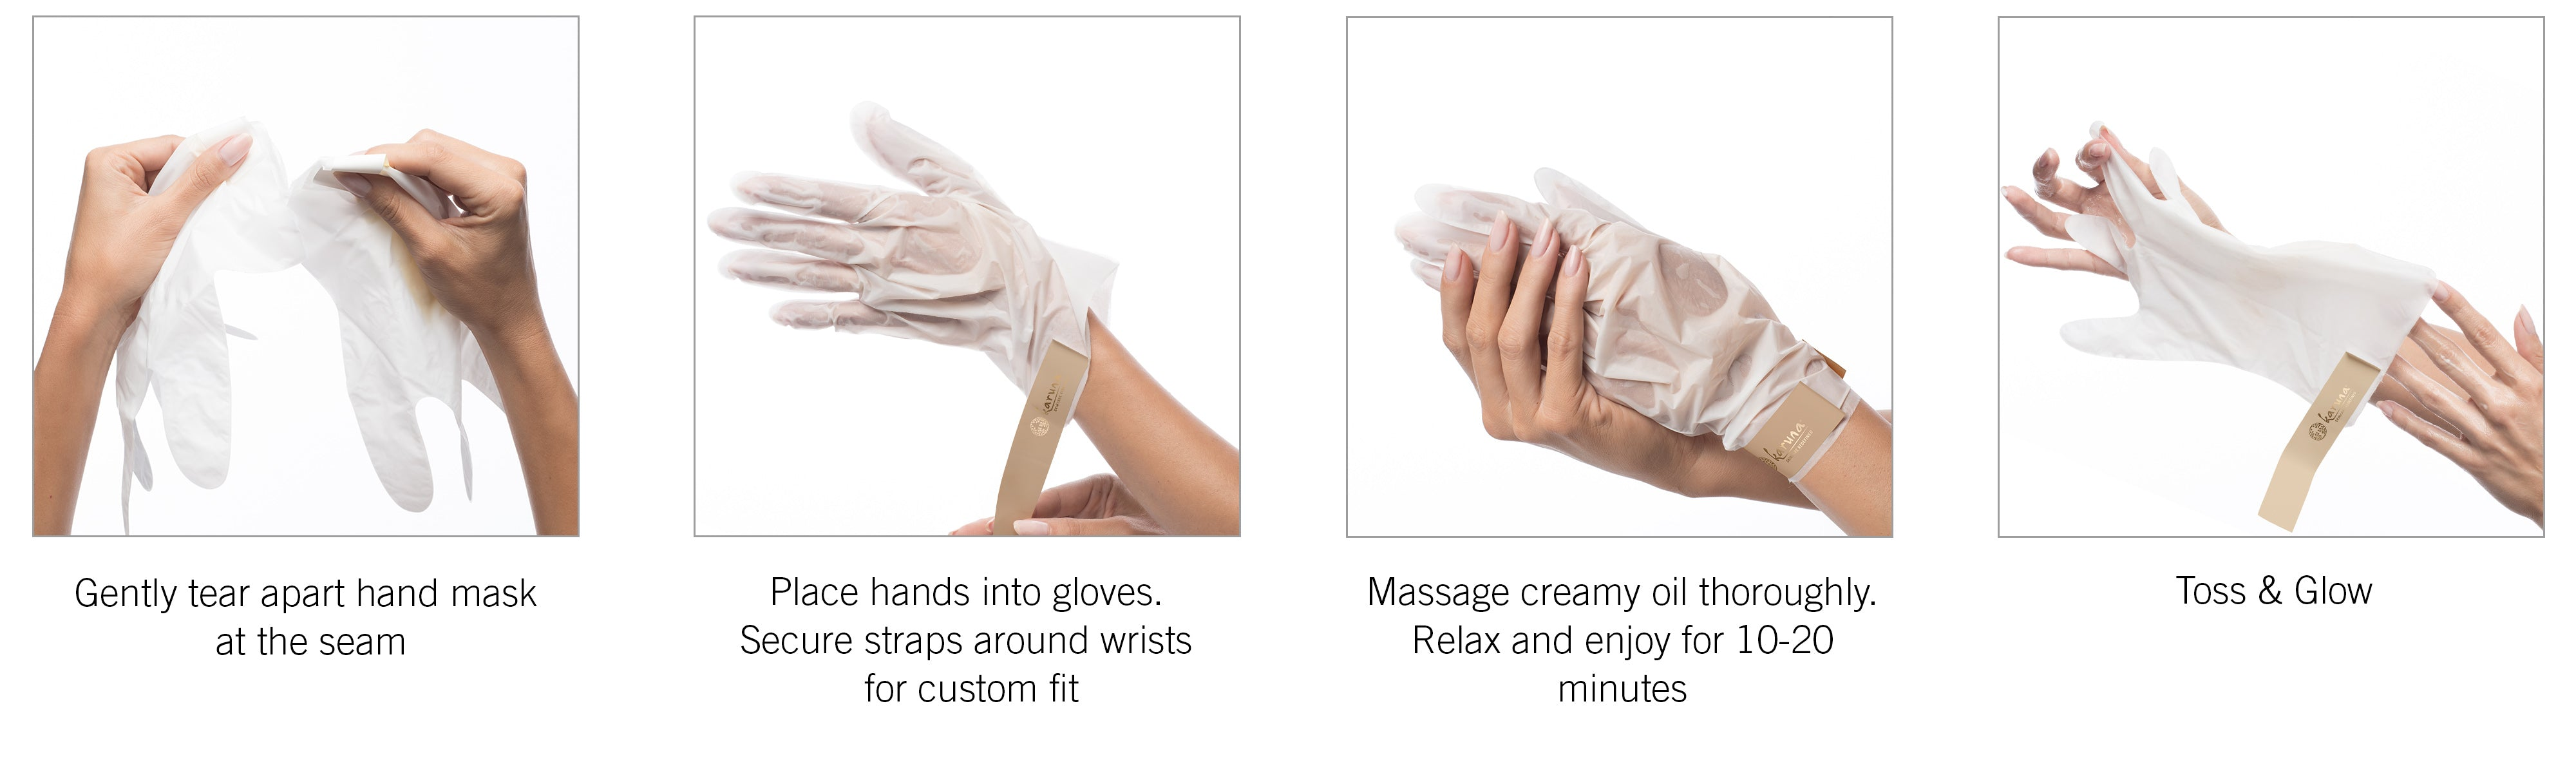 How to use your Karuna Hand Mask